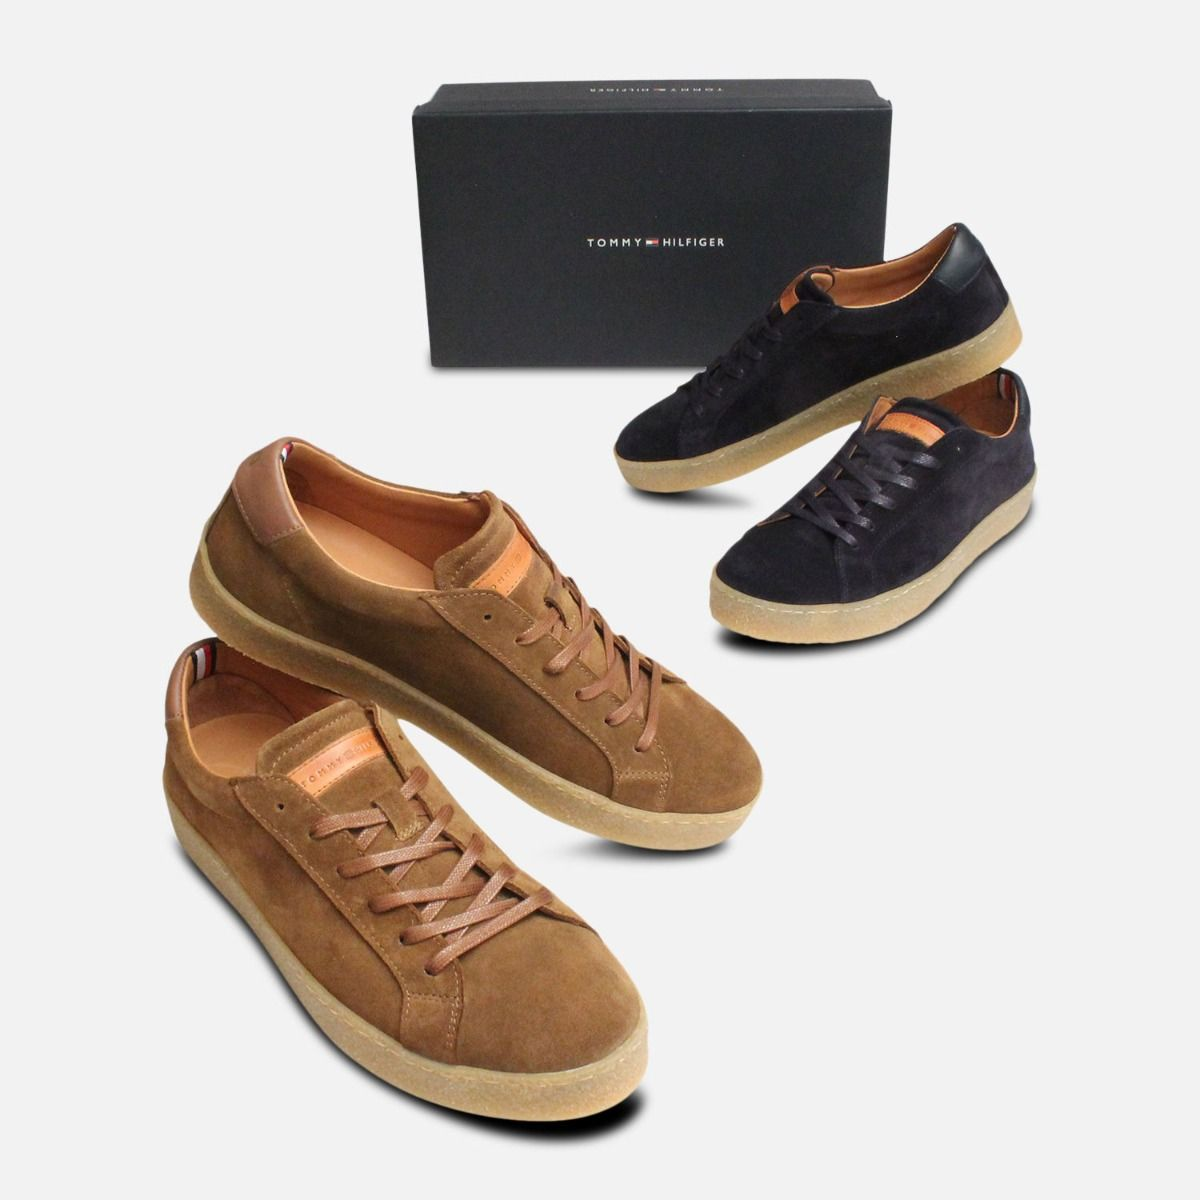 Tommy Hilfiger Luxury Tobacco Suede Cupsole Shoes